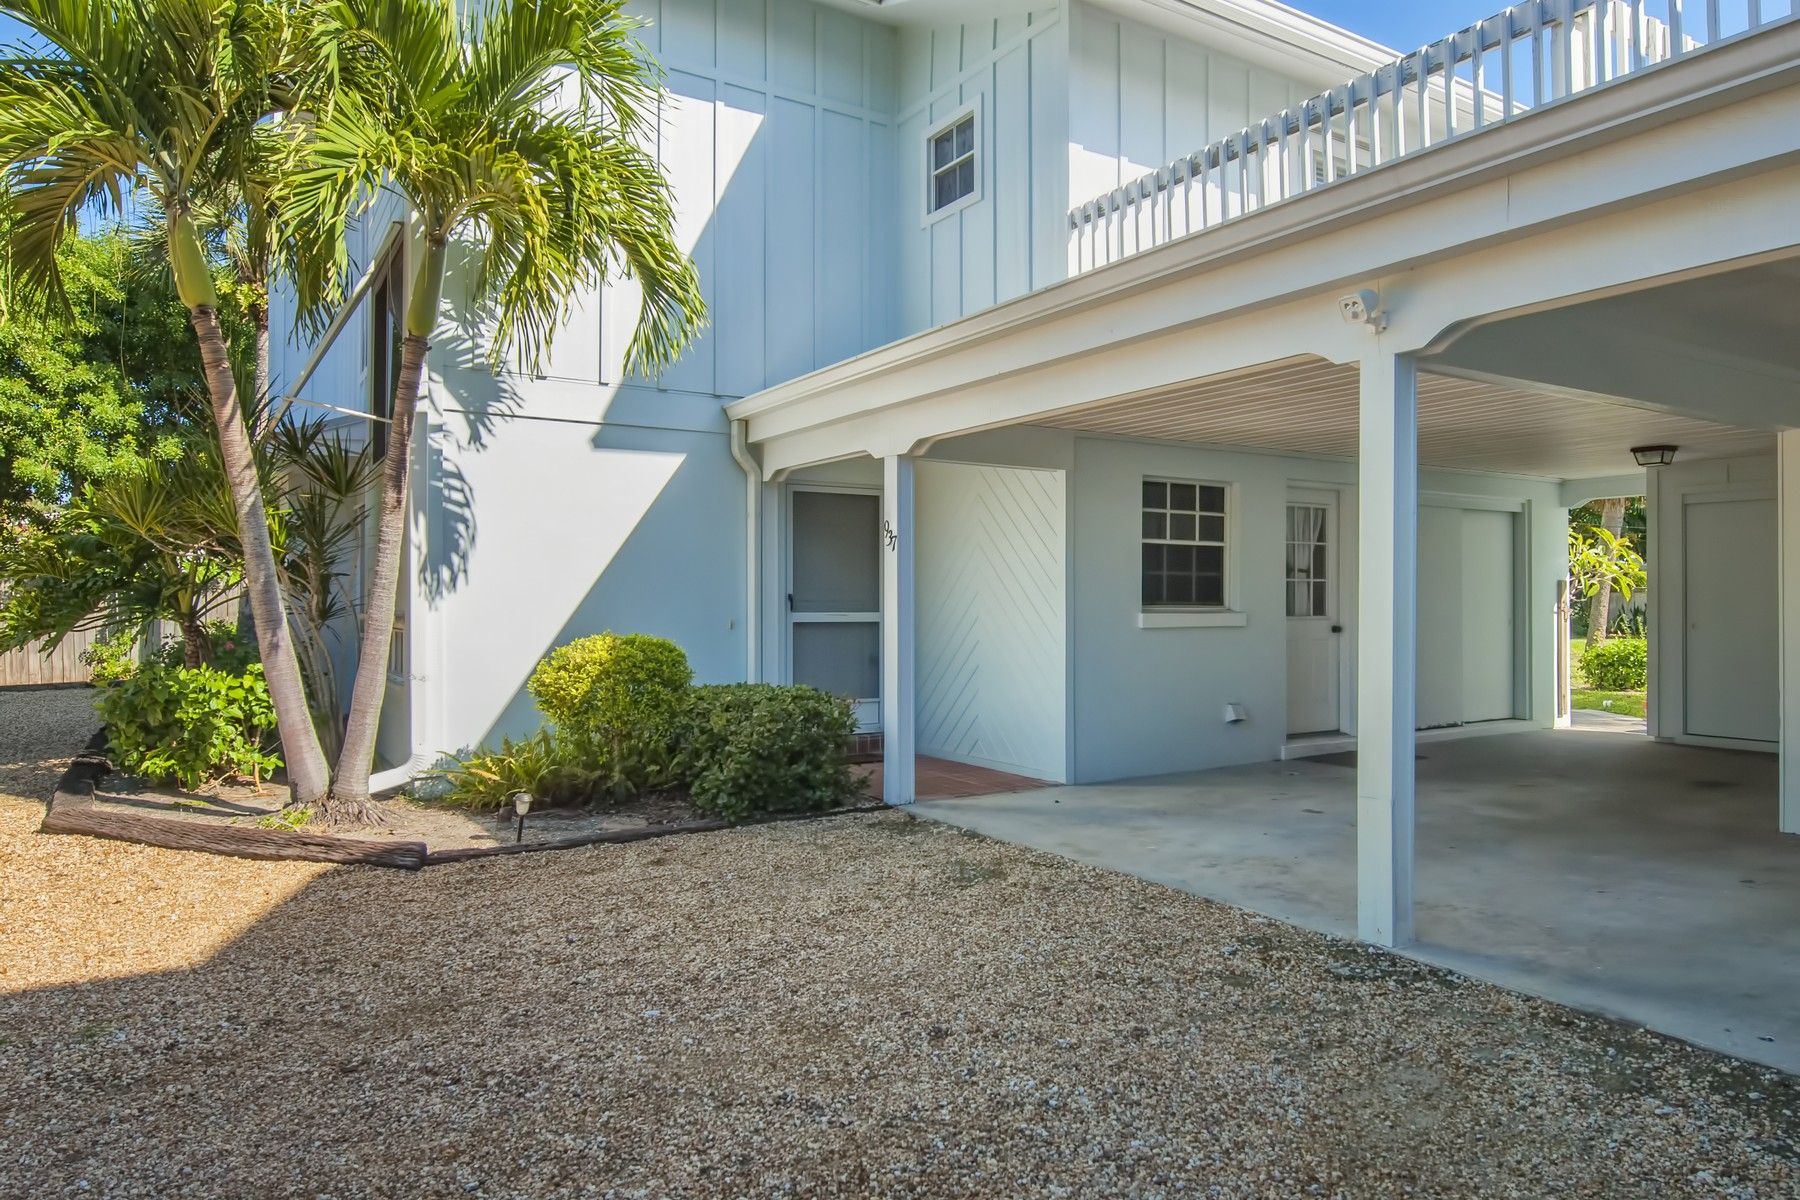 Additional photo for property listing at Hidden Gem South Beach! 937 Pirate Cove Lane Vero Beach, Florida 32963 United States